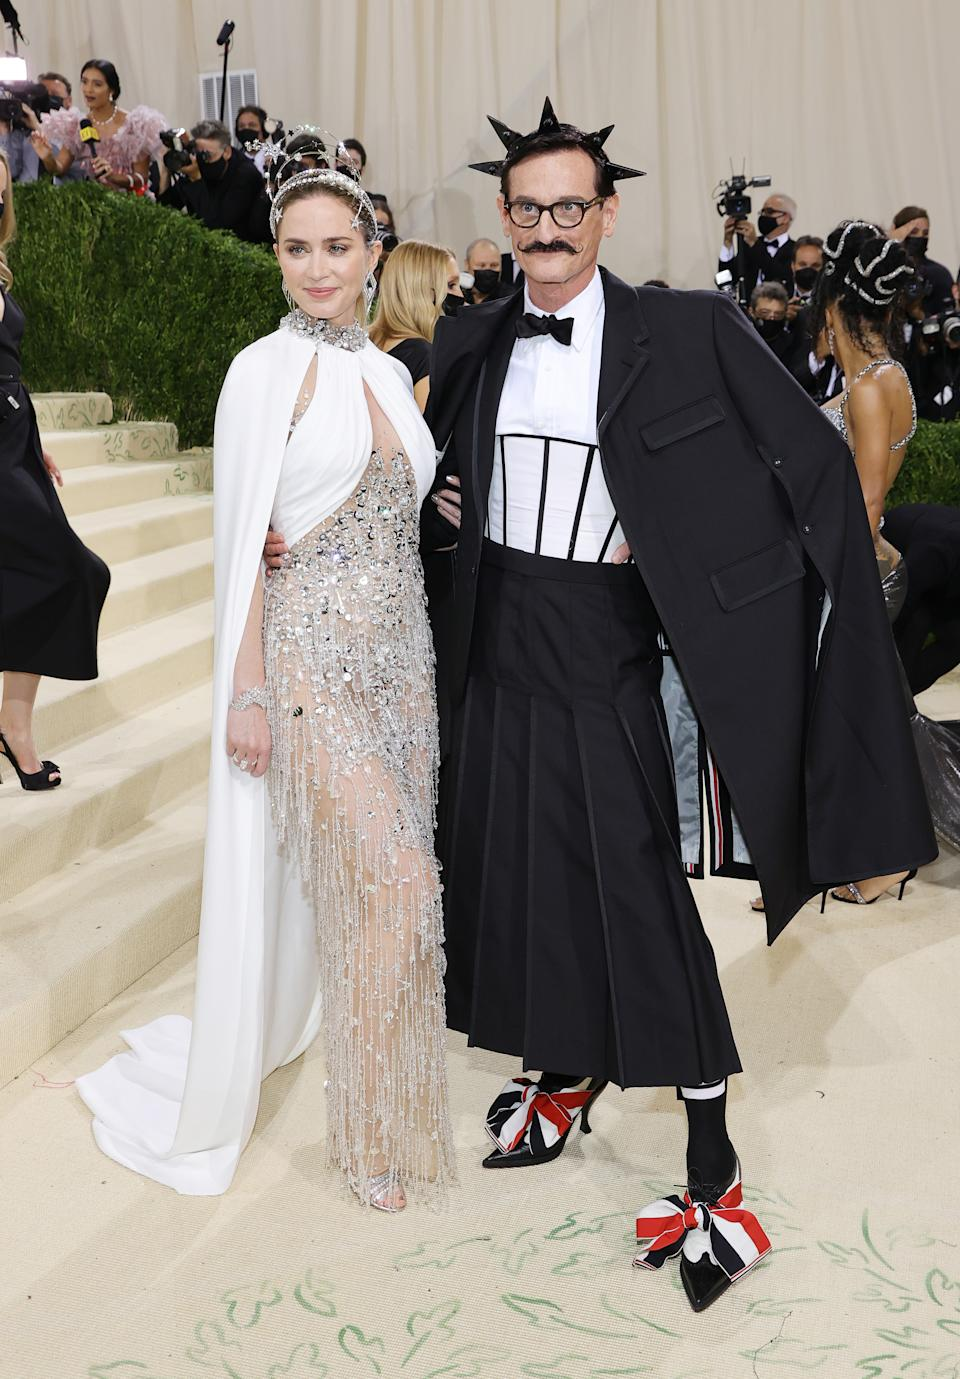 Emily Blunt and Hamish Bowles attend The 2021 Met Gala Celebrating In America: A Lexicon Of Fashion at Metropolitan Museum of Art on September 13, 2021 in New York City. (Getty Images)